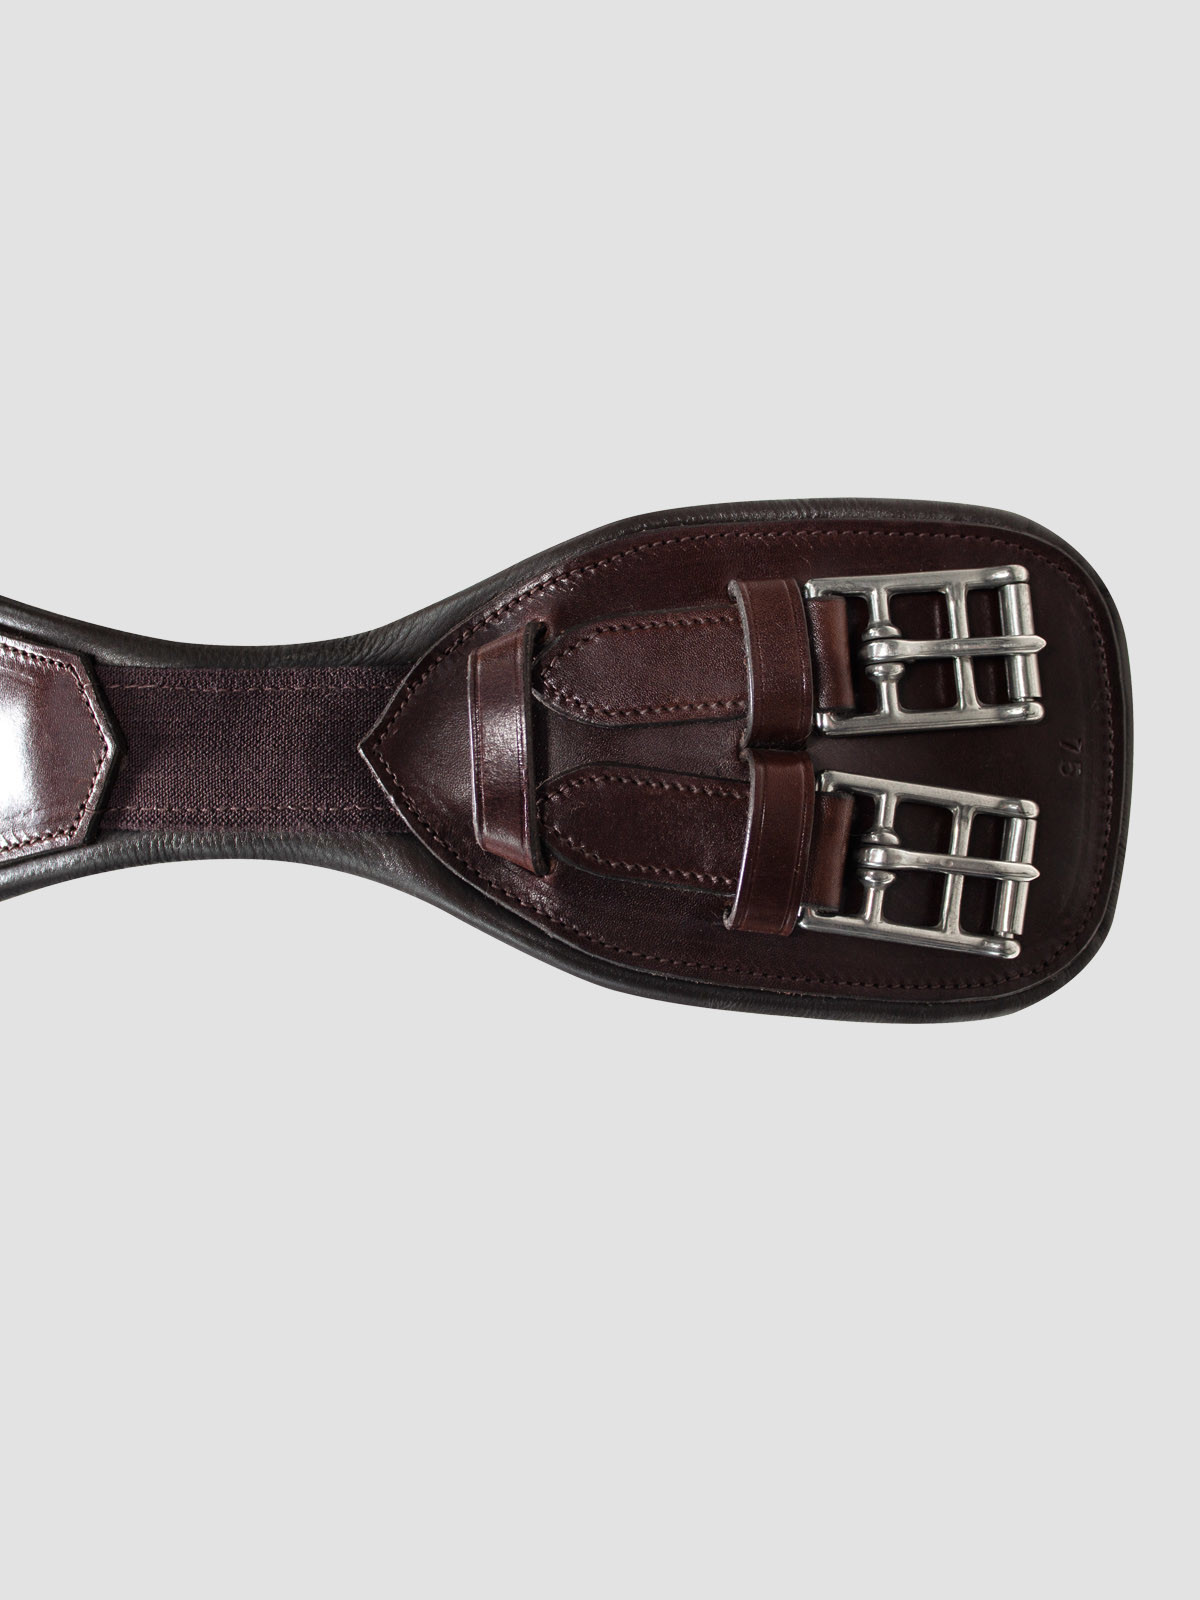 Equiline Comfort Dressage Girth 4